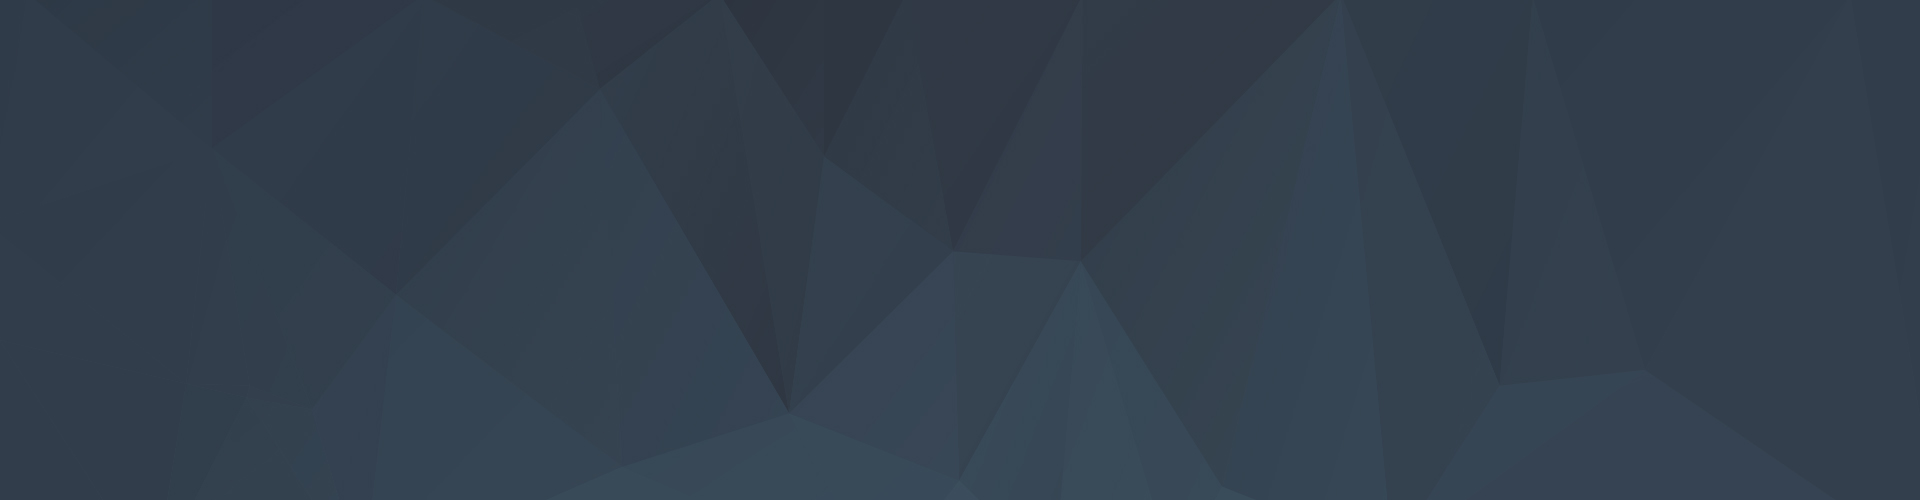 Footer Background 01